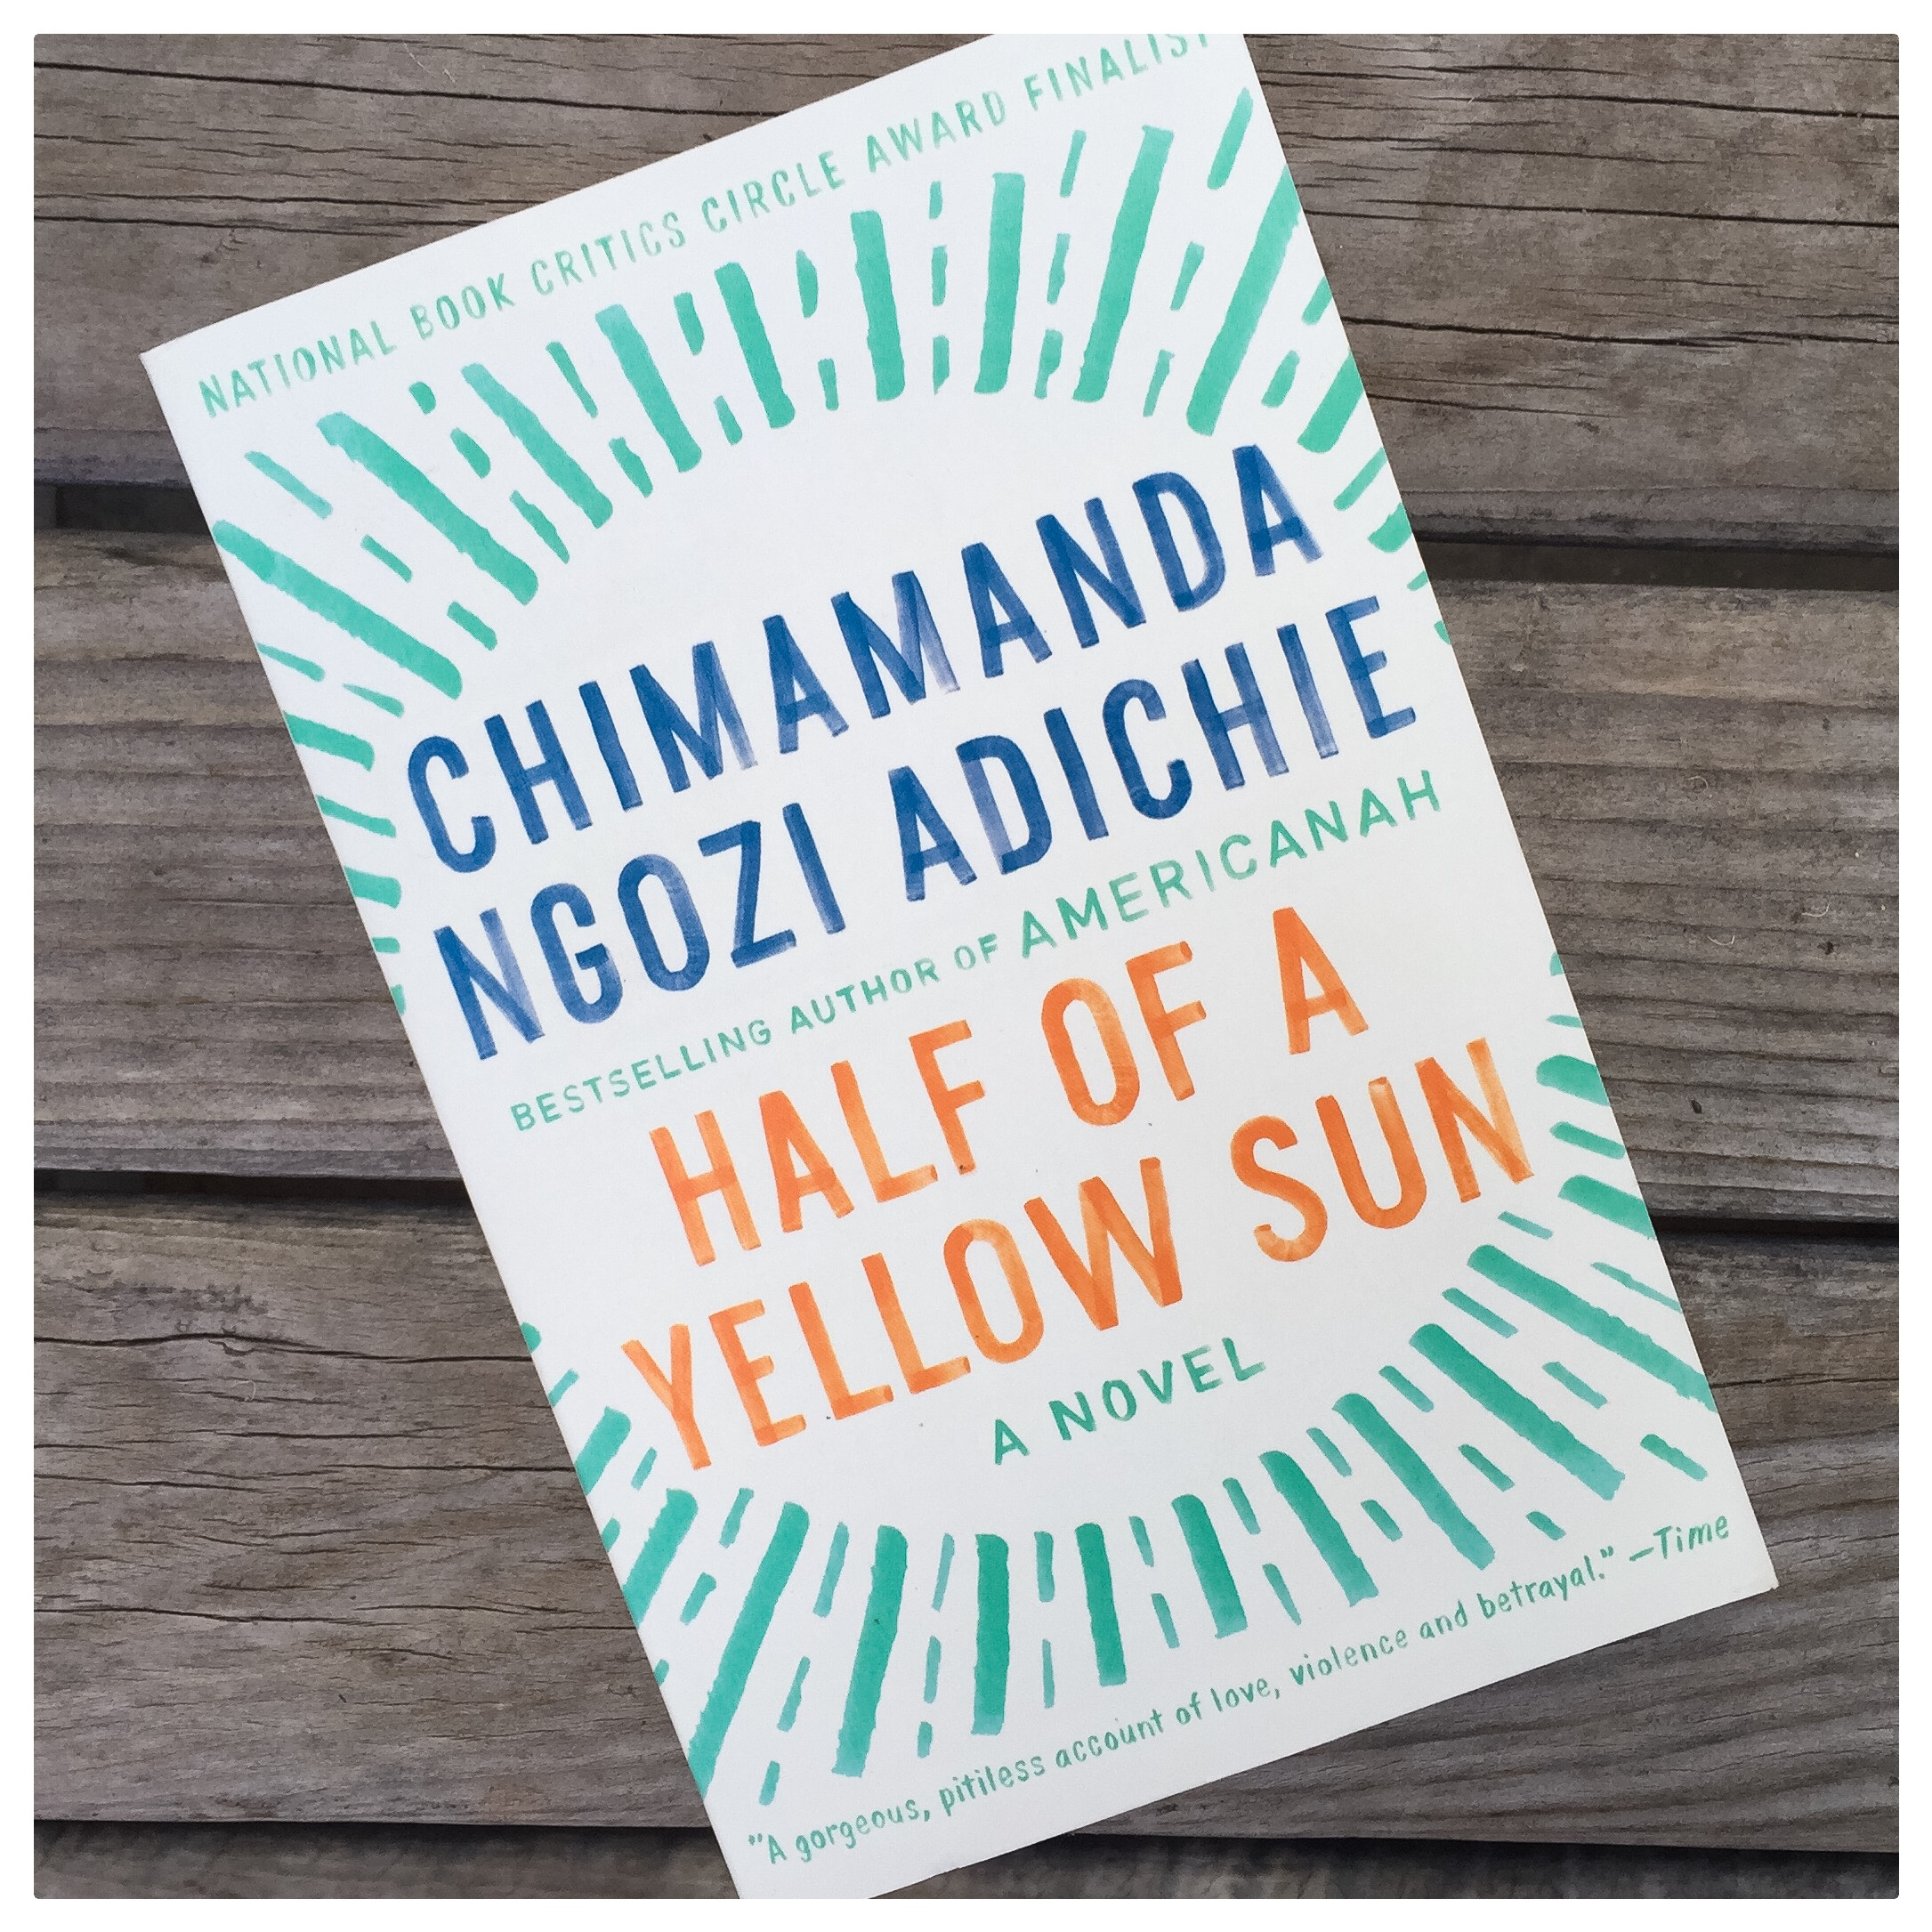 As if you needed another excuse to stay all cozy and warm under your new blanket, Half of a Yellow Sun will give you just that. Another one of our favorite reads!